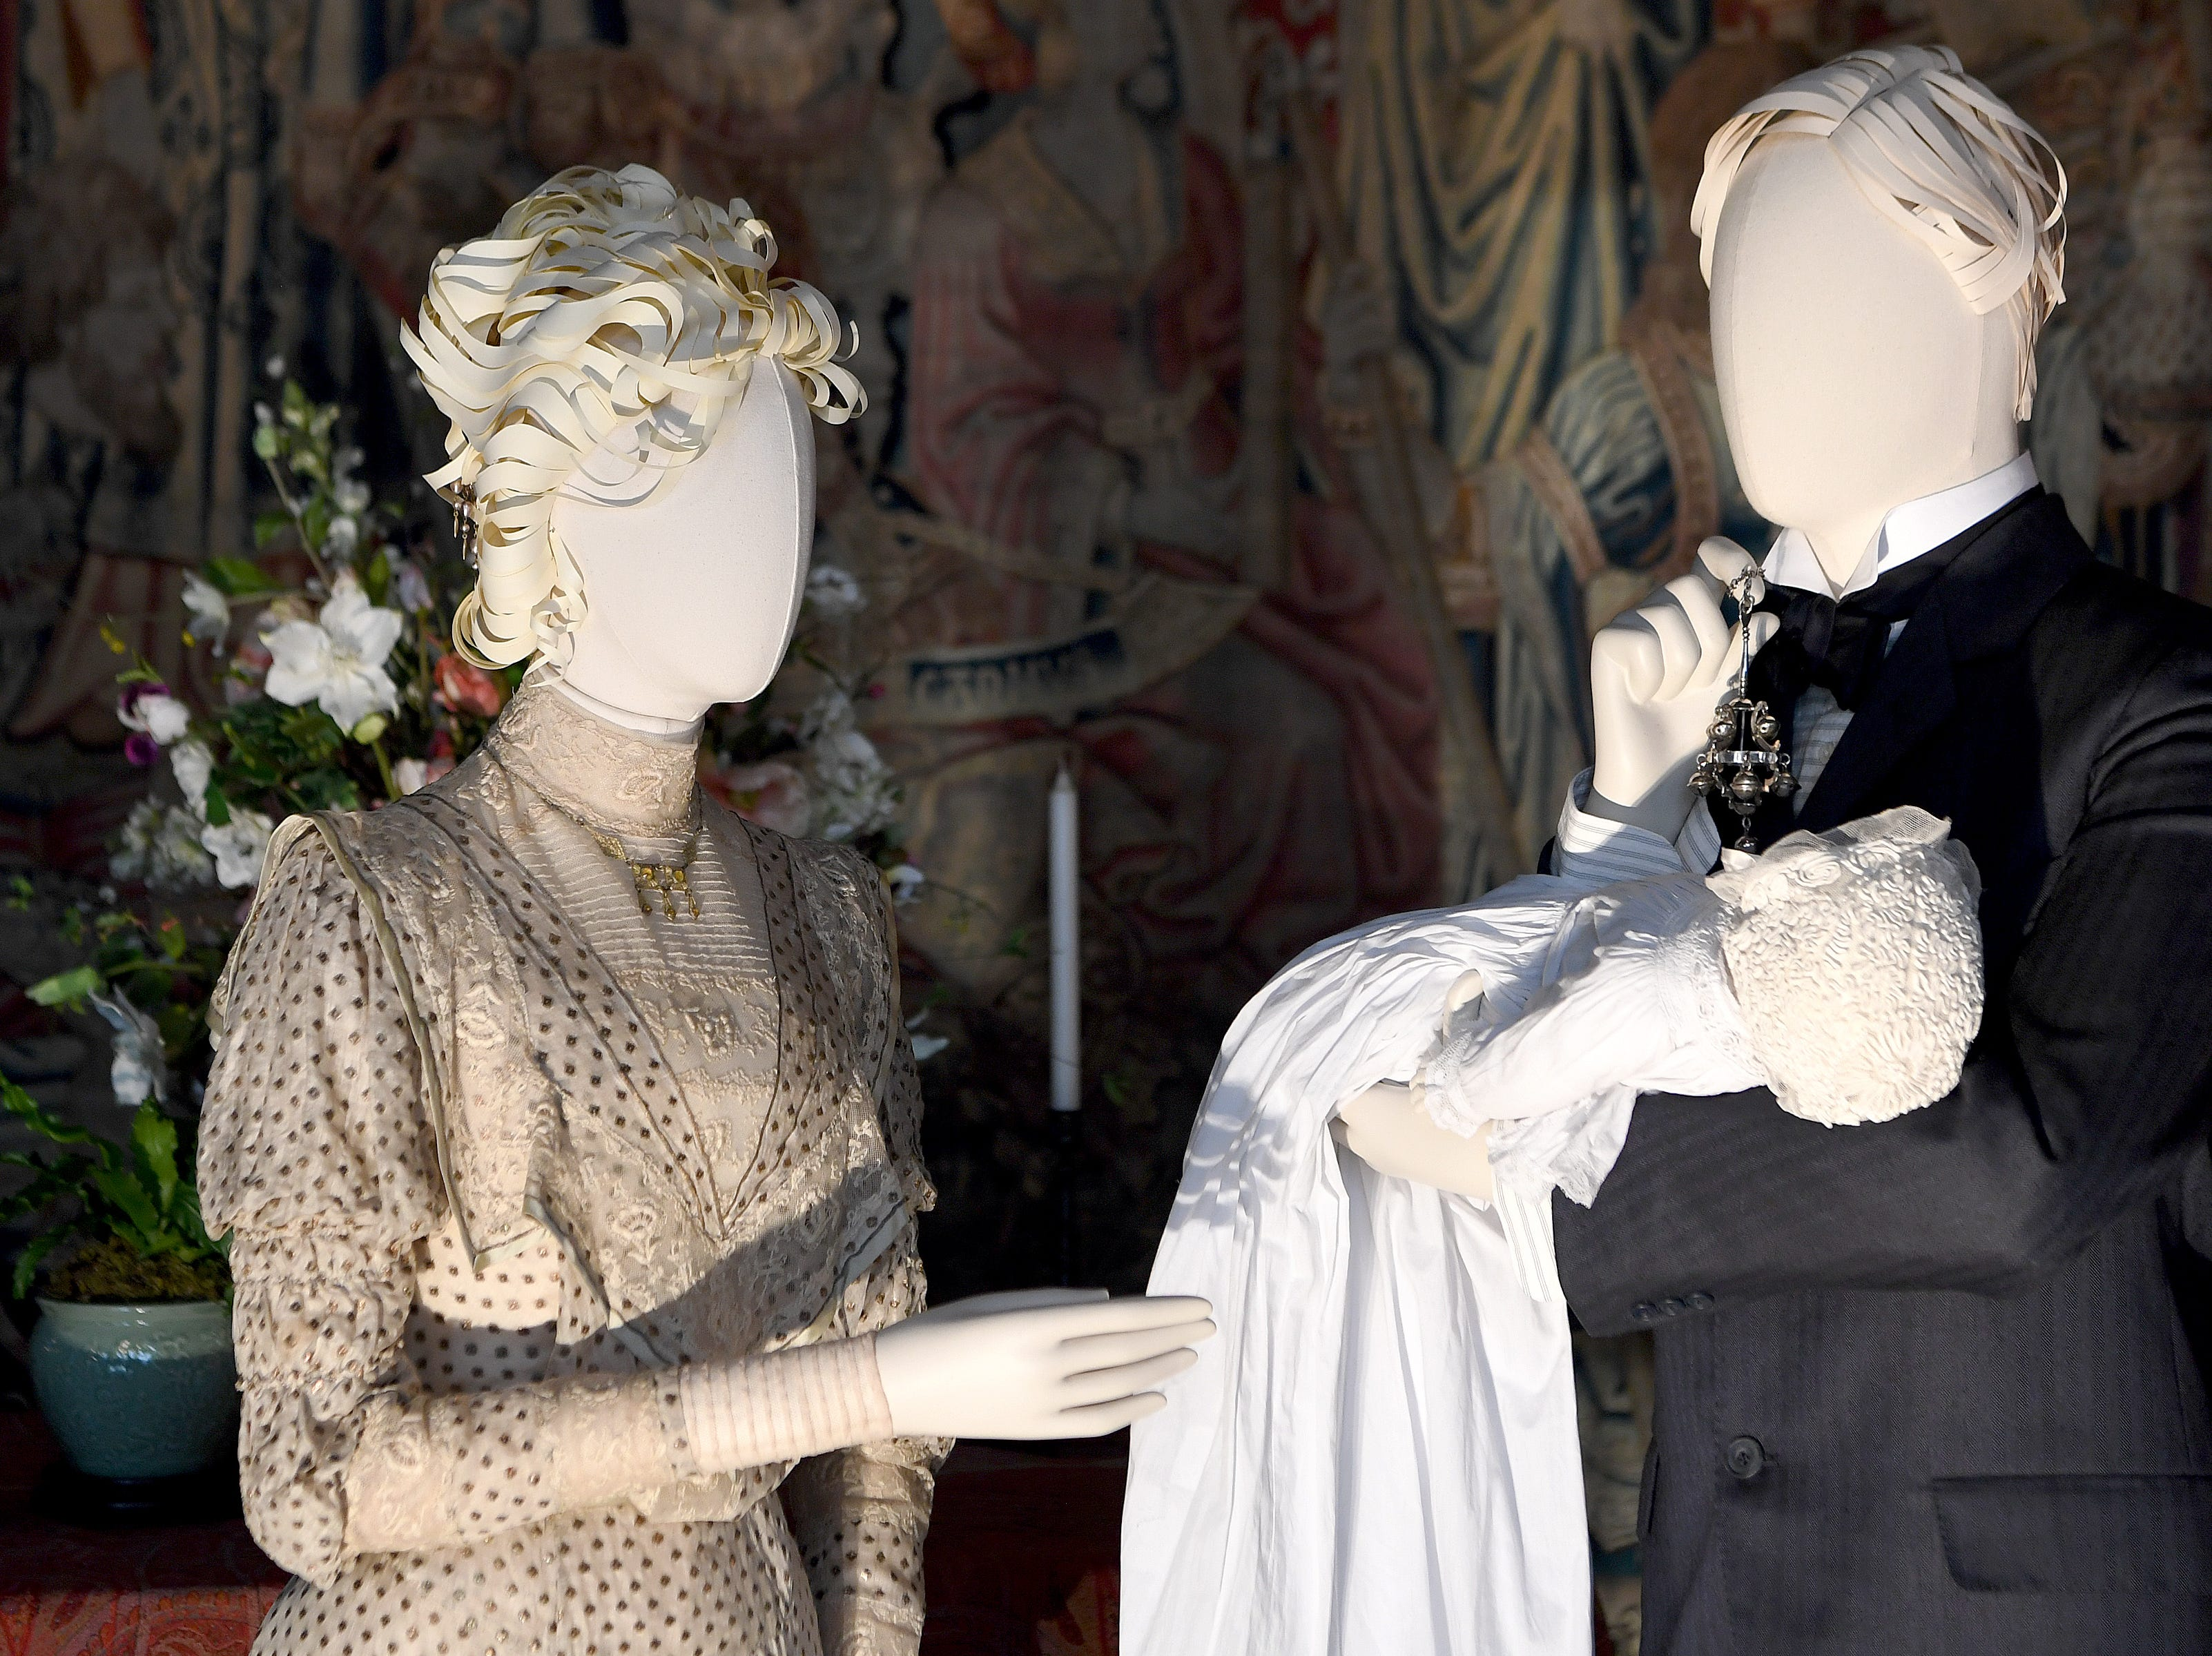 """Outfits recreated from photographs of Edith and George Vanderbilt, with their infant daughter Cornelia, are on display in the tapestry gallery of the Biltmore House for """"A Vanderbilt House Party, the Gilded Age,"""" on Feb. 7, 2019. Cornelia was born at Biltmore in 1900."""